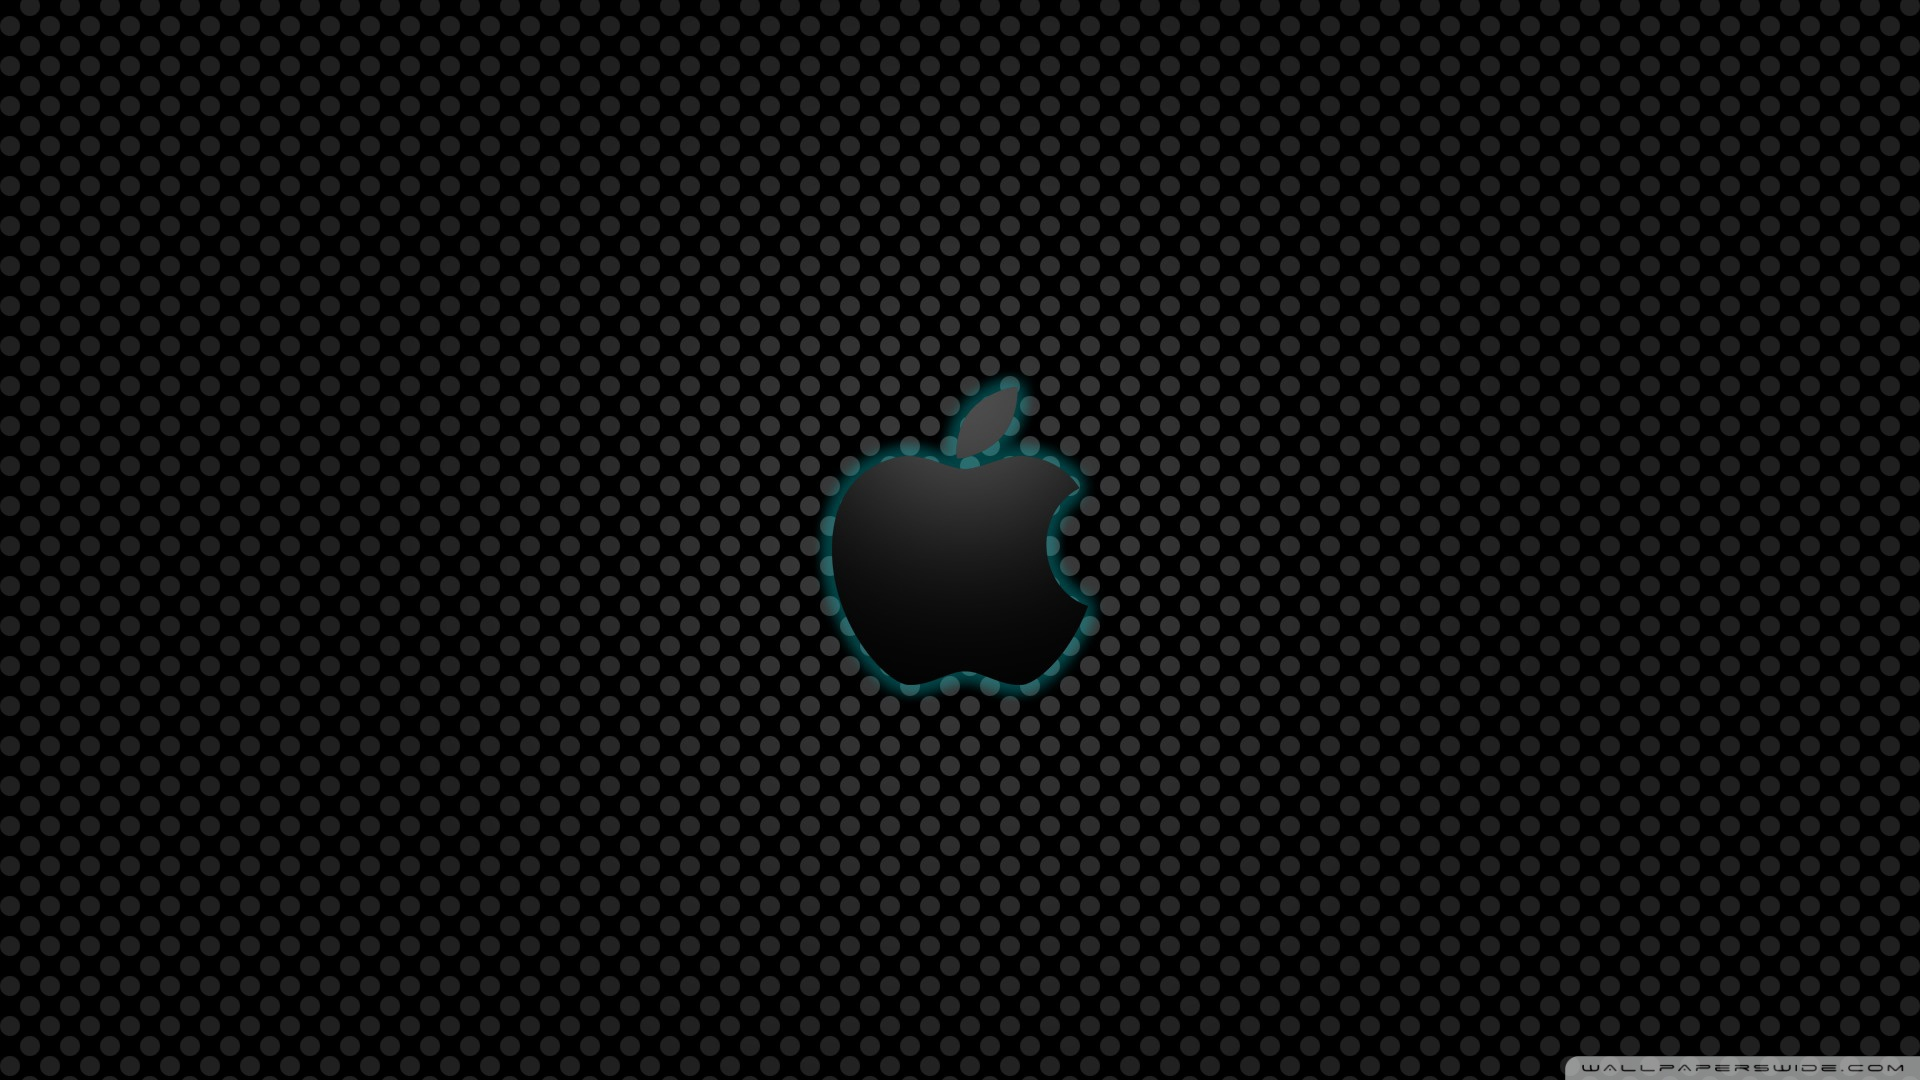 Apple Mac 12 Wallpaper 1920x1080 Think Different Apple Mac 12 1920x1080